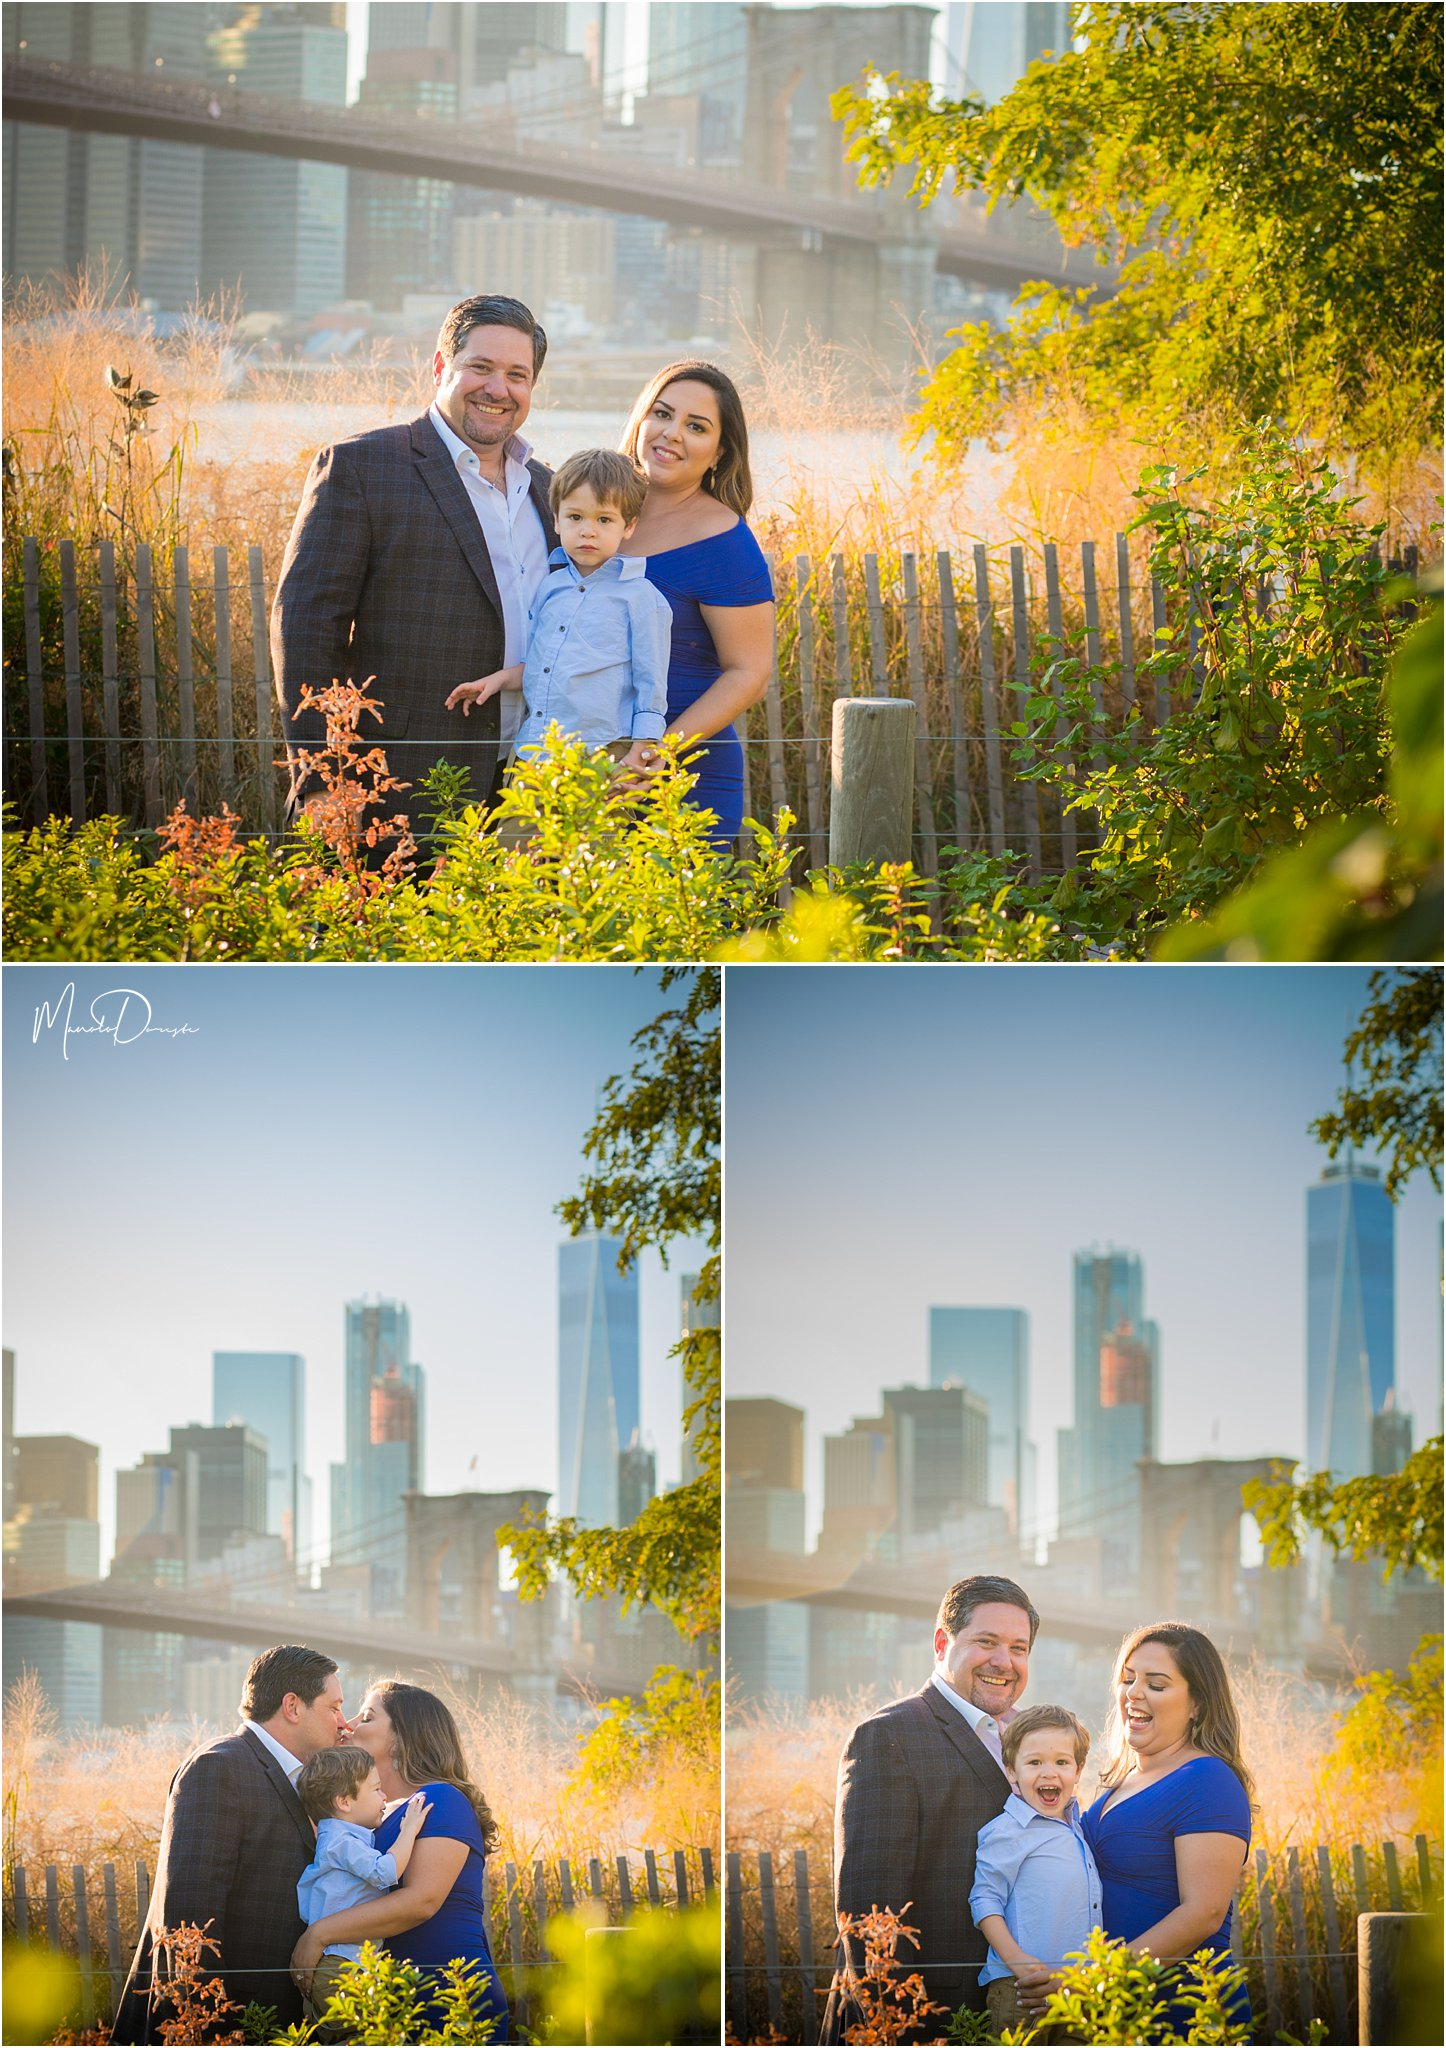 0178_ManoloDoreste_InFocusStudios_Wedding_Family_Photography_Miami_MiamiPhotographer.jpg